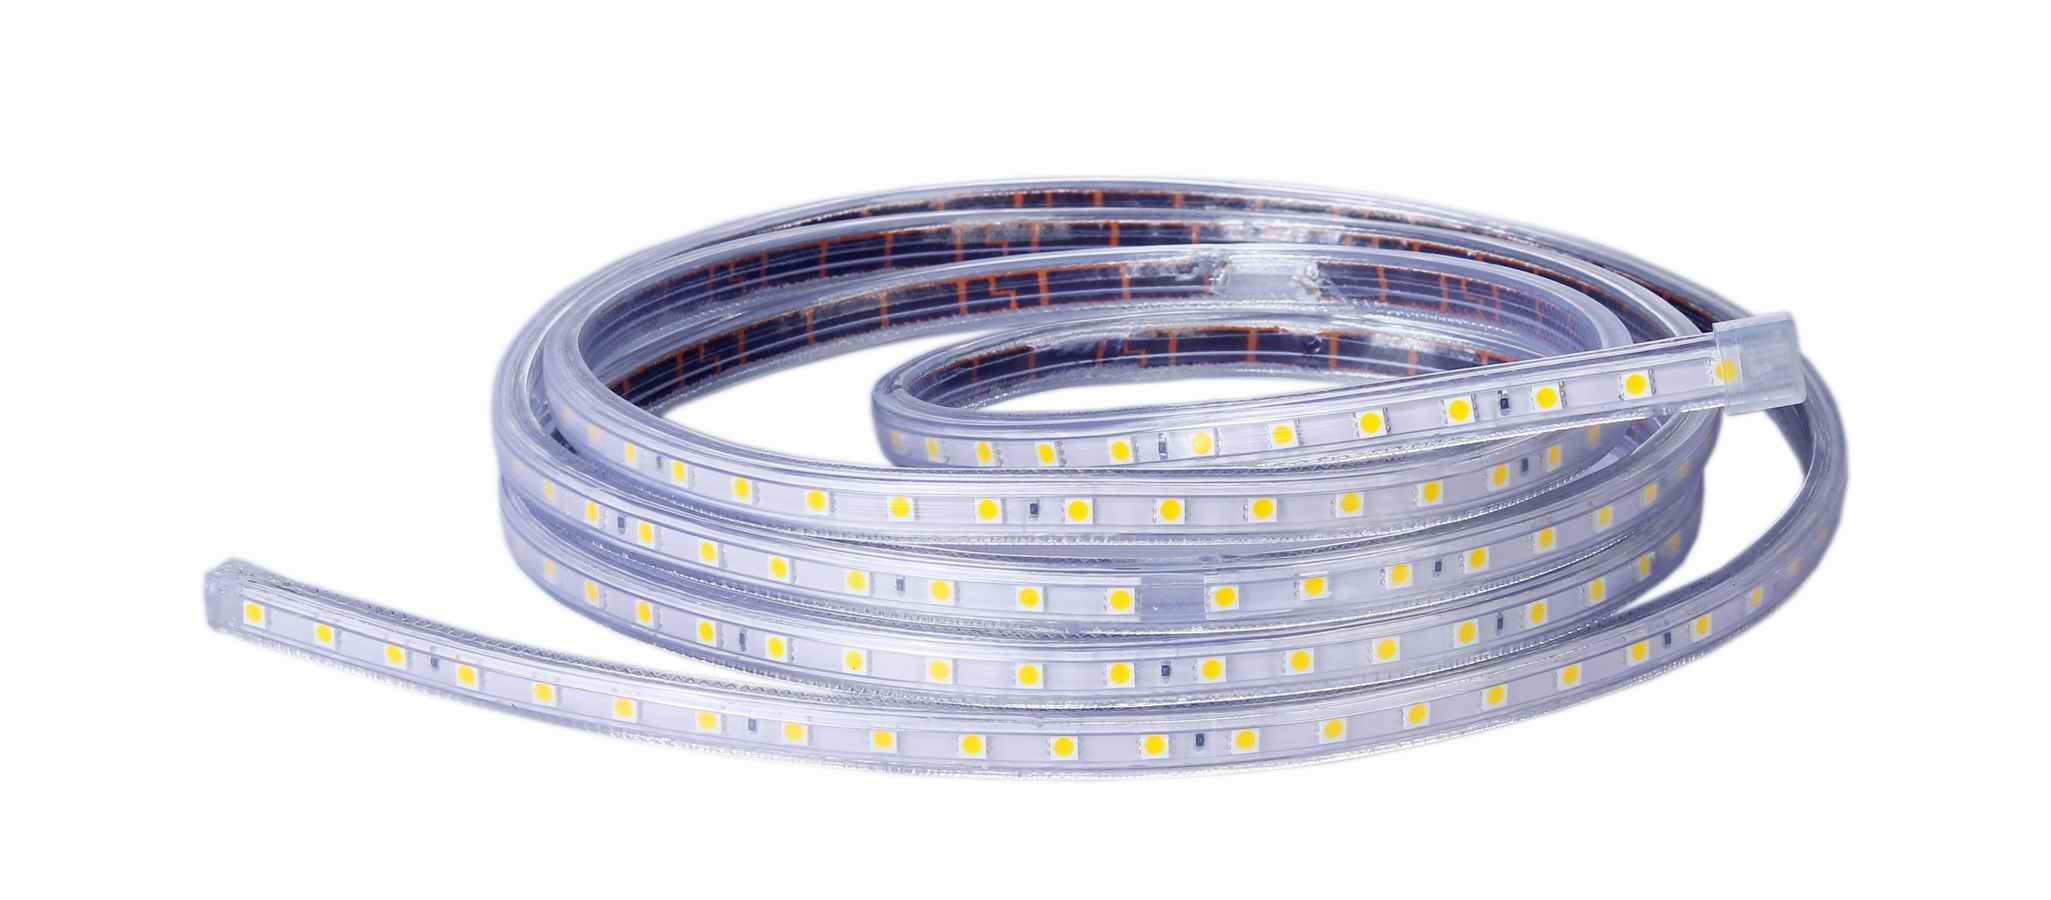 Led flexible strip light smd5050 220v 30led meter led - Tira de led exterior ...